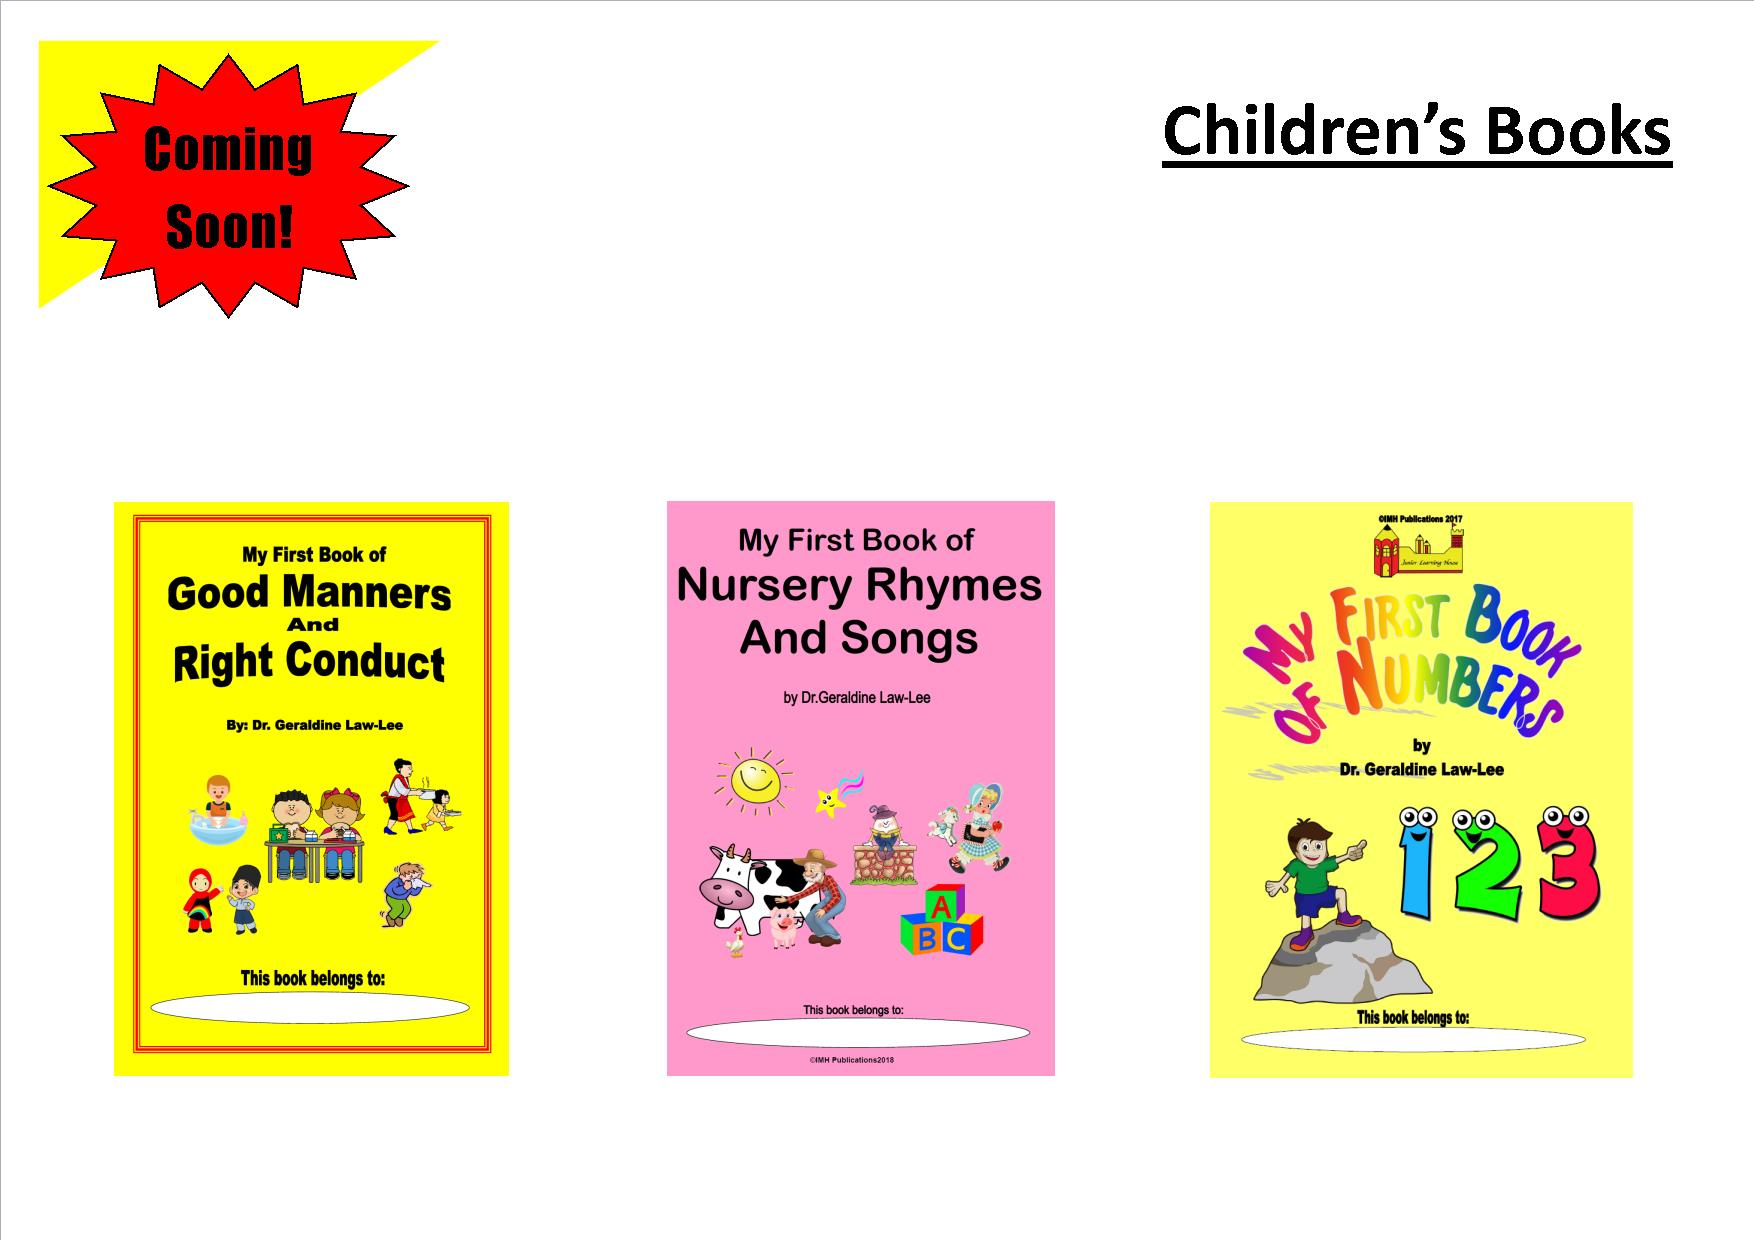 CHILDRENS BOOKS1